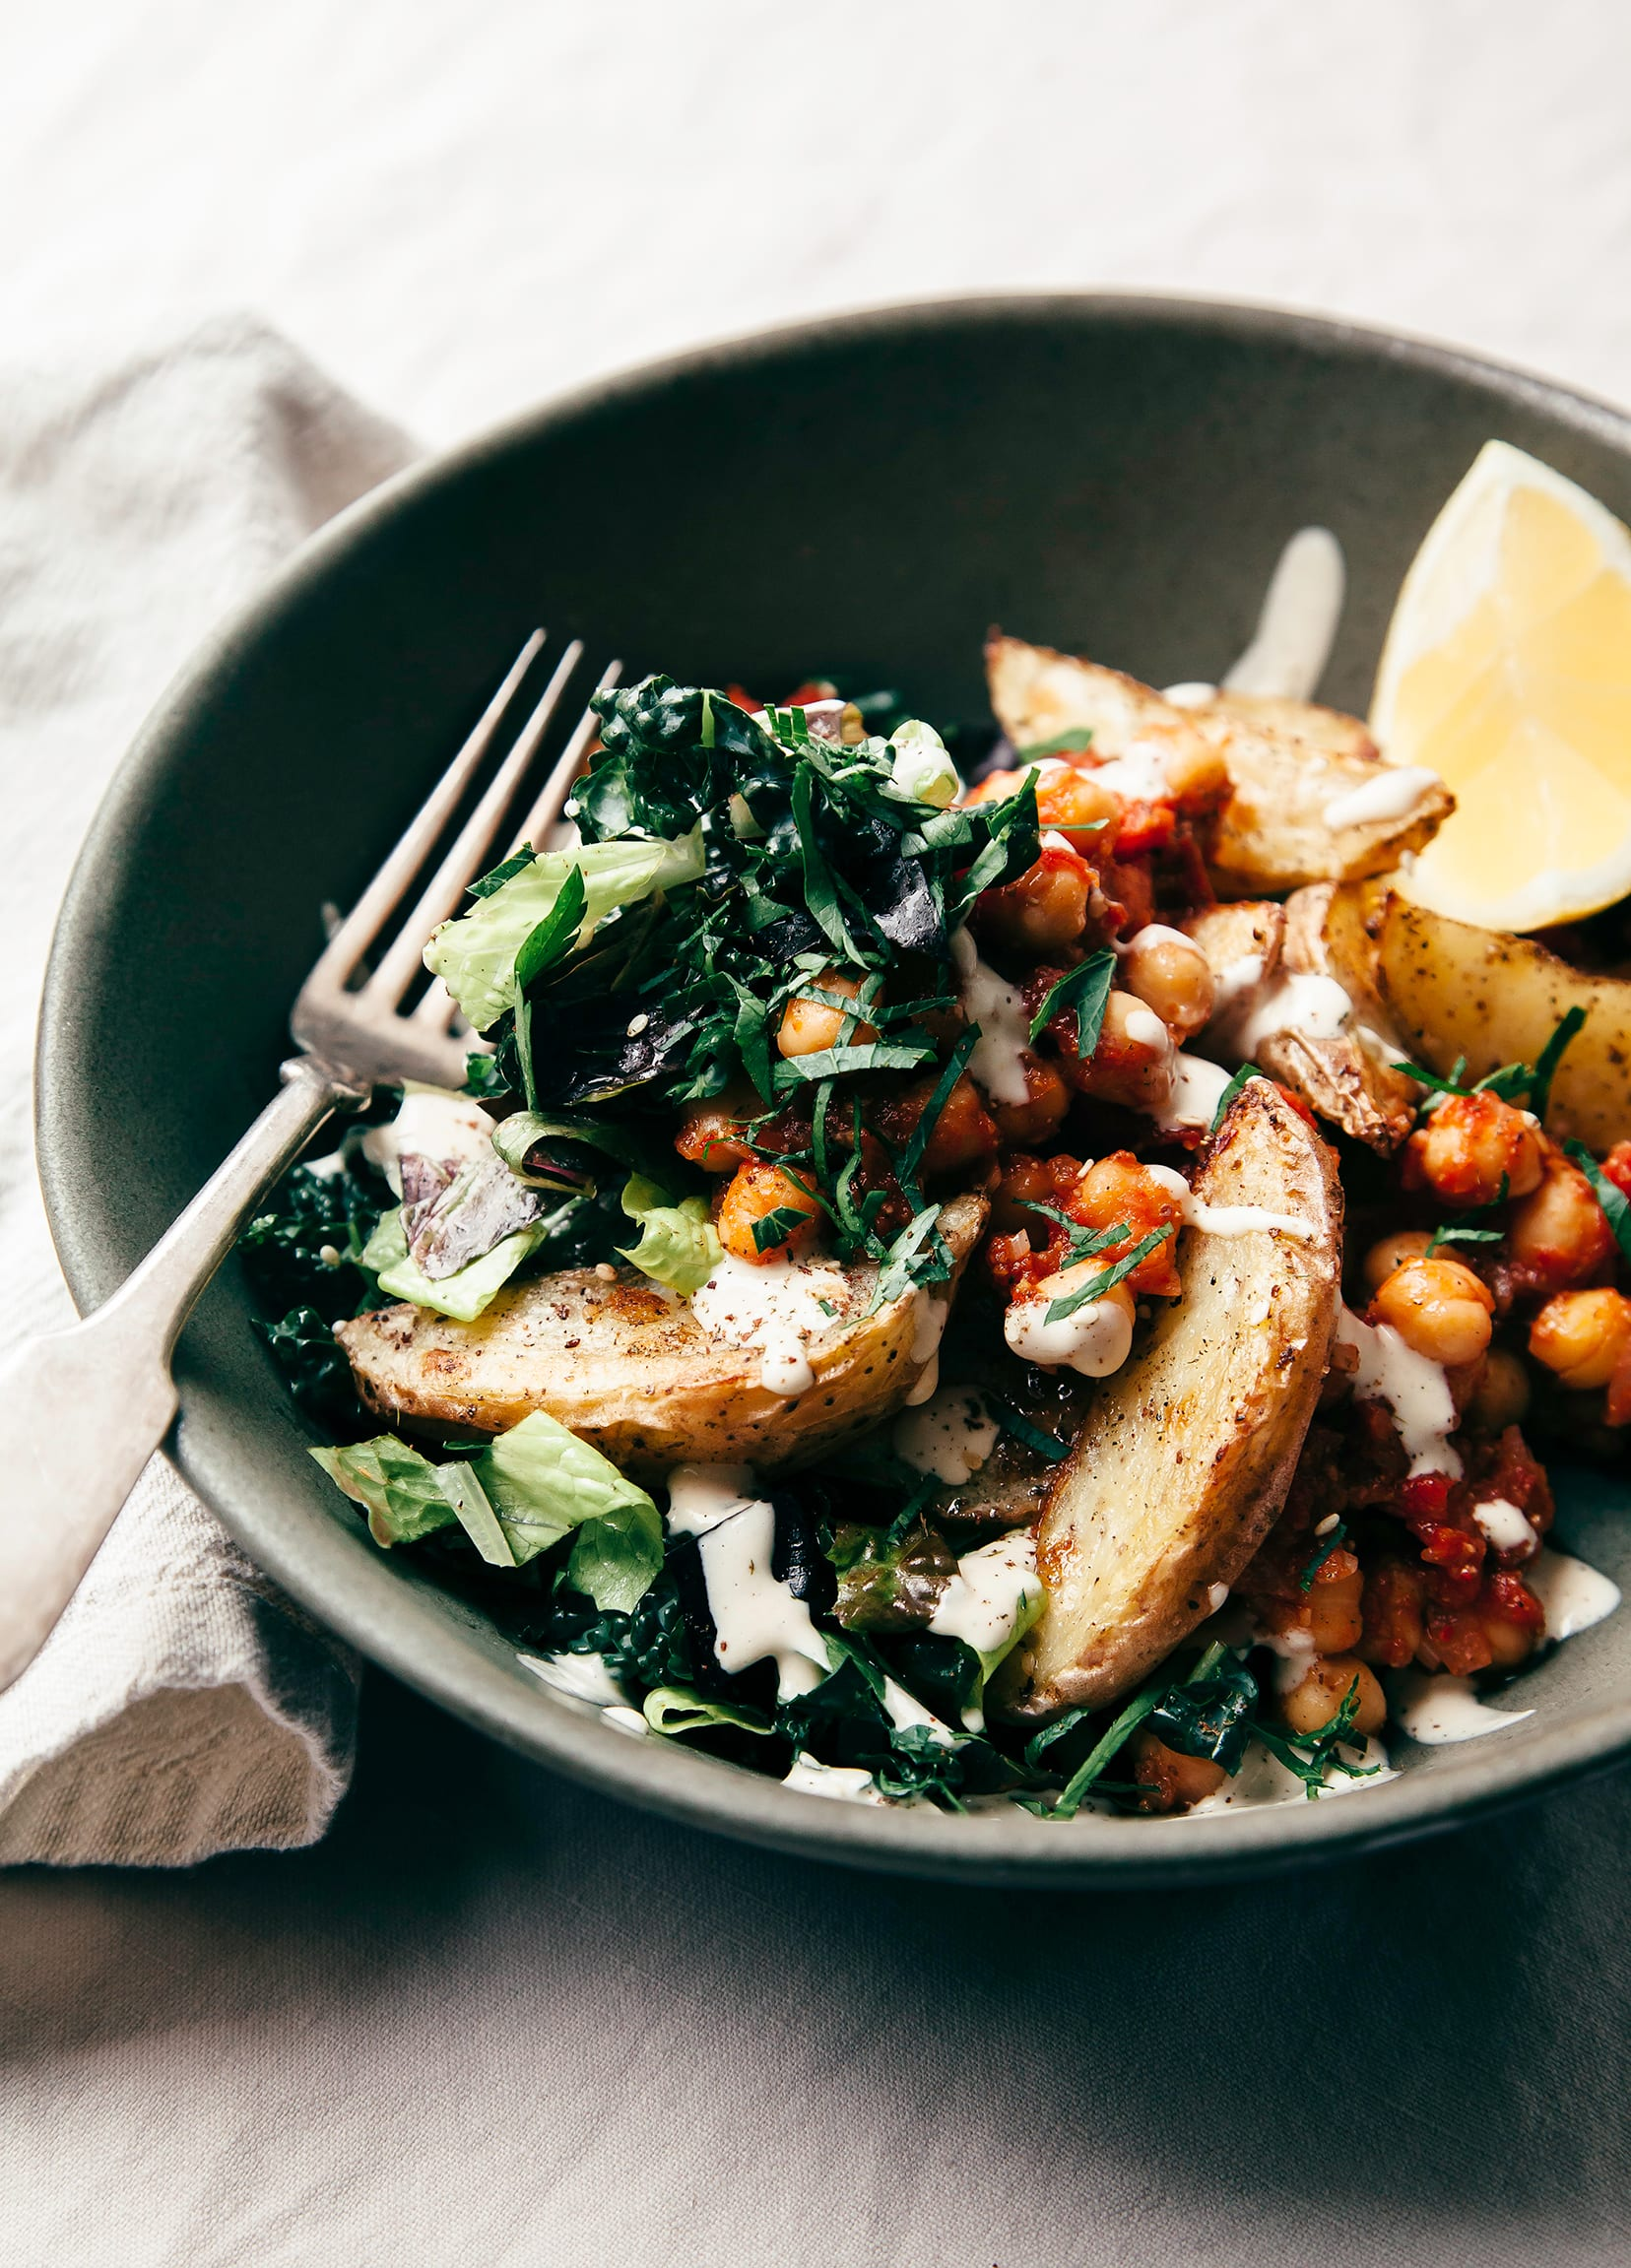 A 3/4 angle shot of a dark green bowl containing: roasted wedges of potatoes, red-sauced chickpeas, a tangle of mixed greens and herbs, and drizzles of a white creamy sauce.